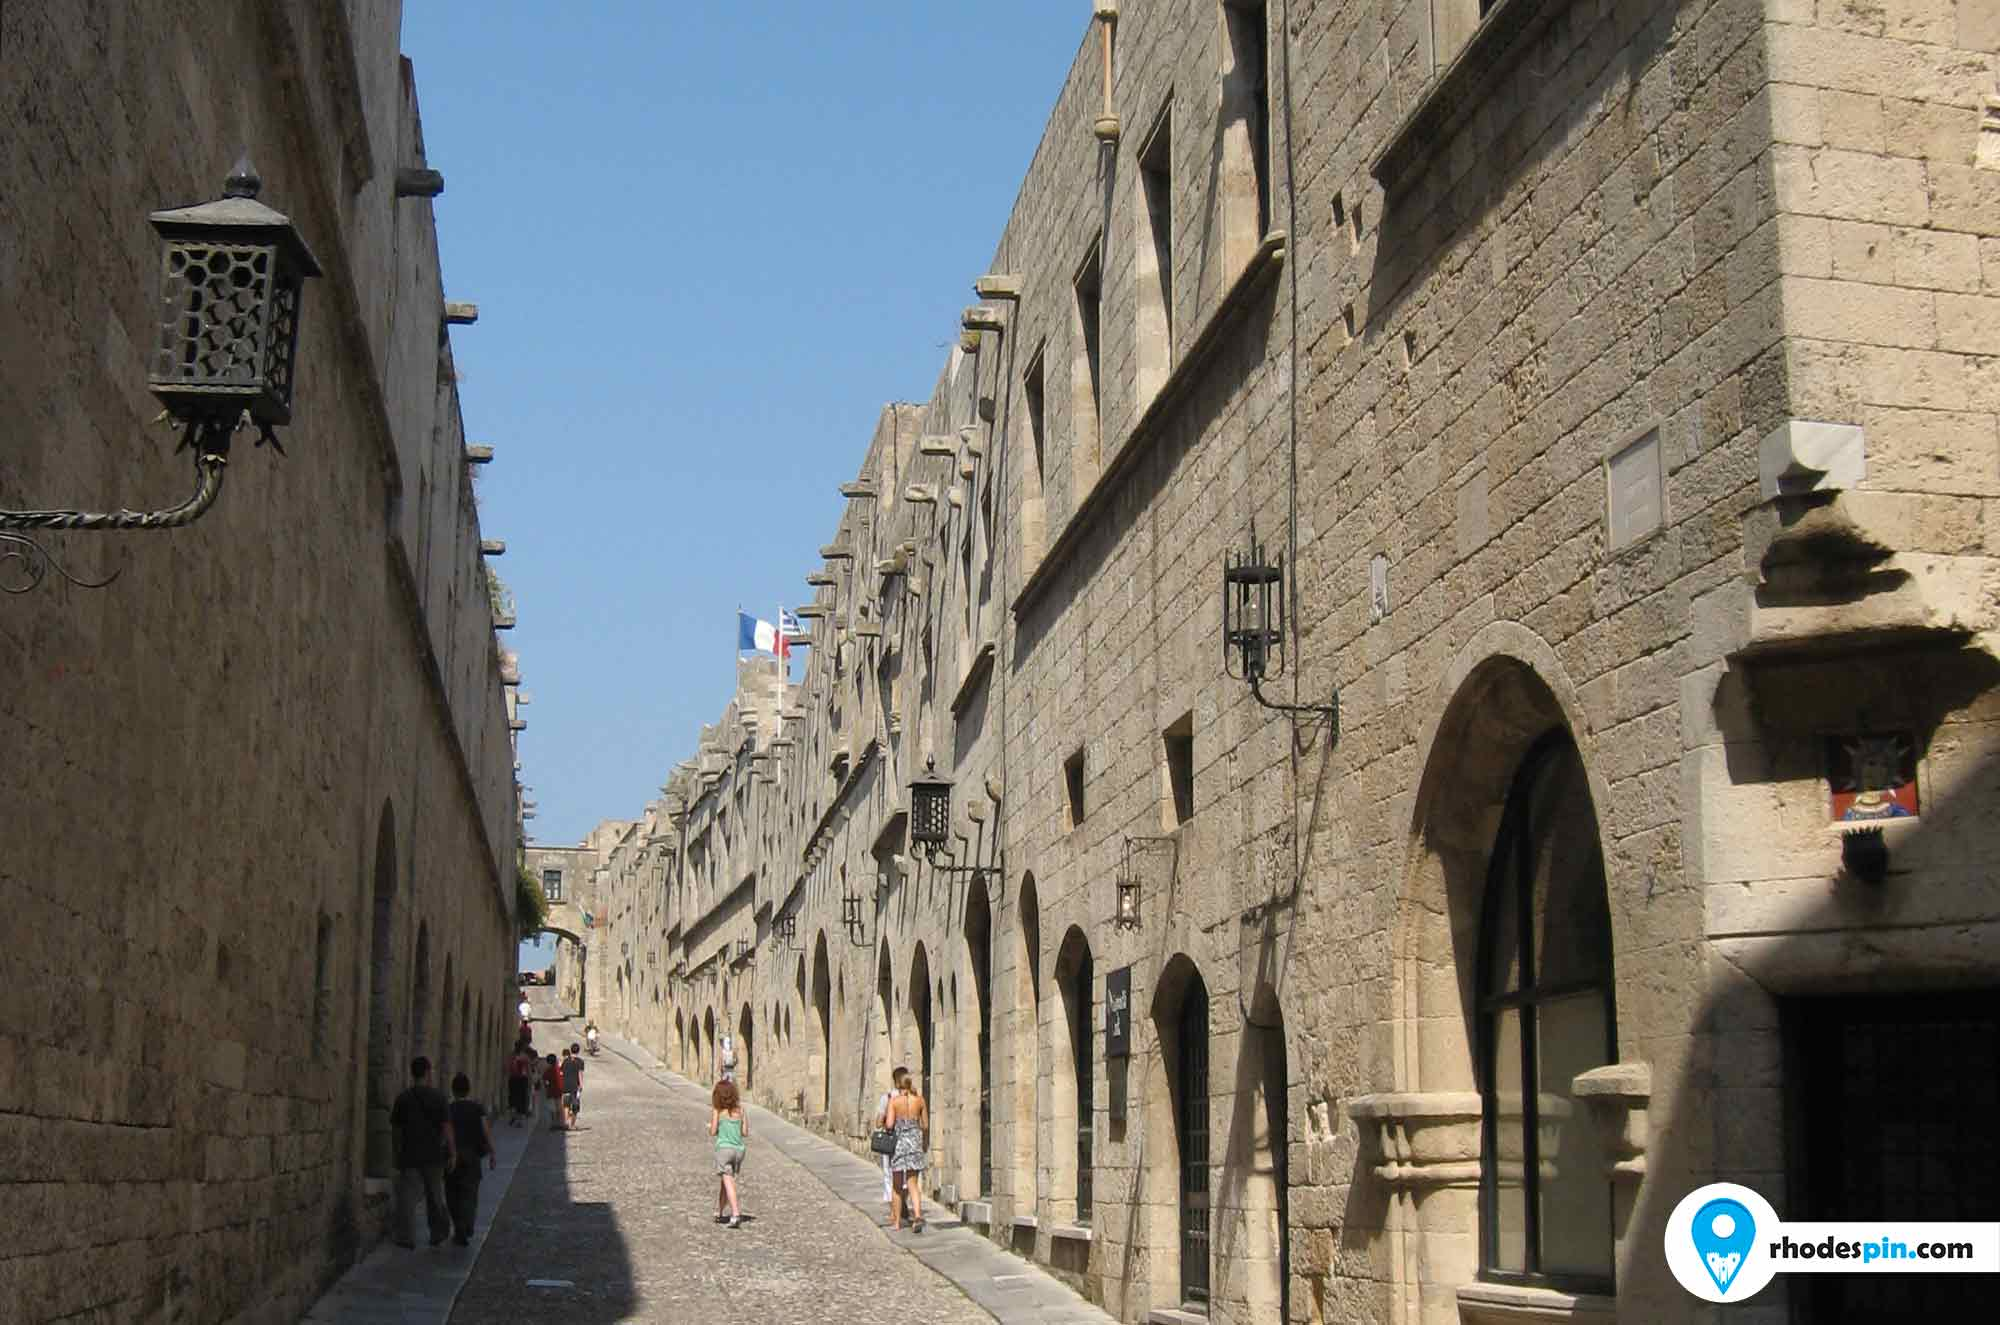 Old town rhodes, old town rodos, medieval rhodes,medieval rodos, ipoton street